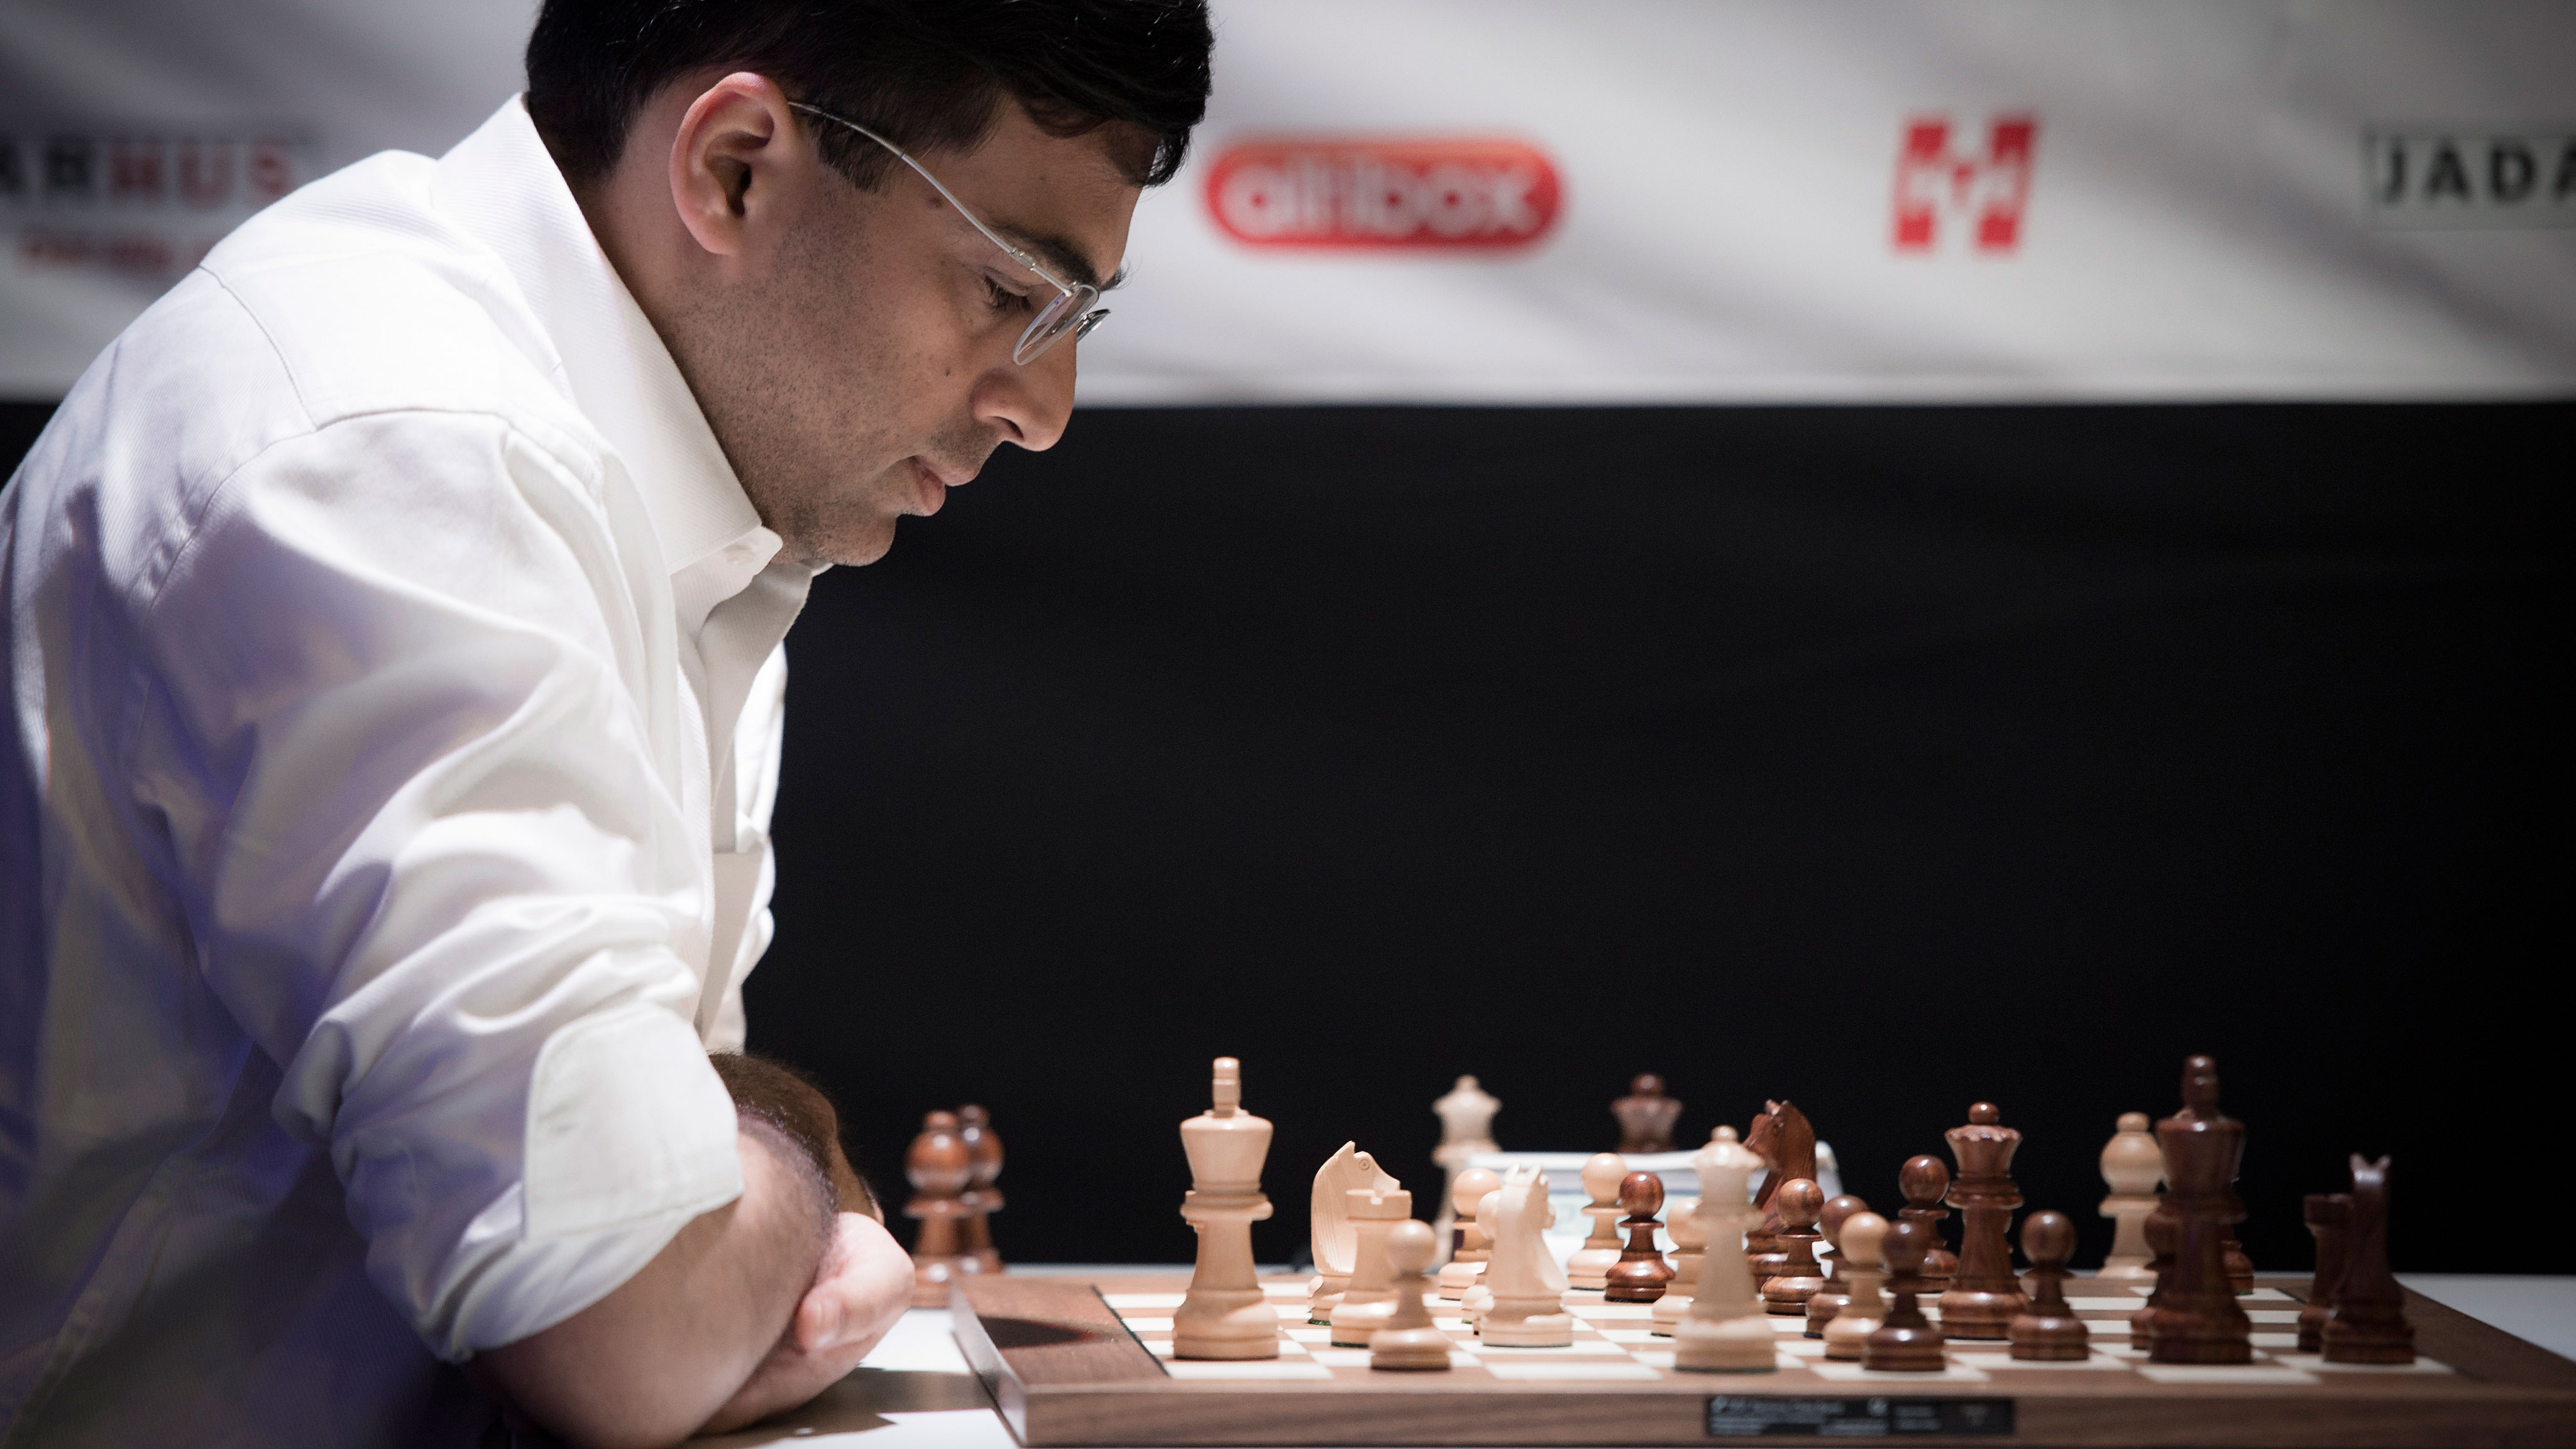 anand-chess